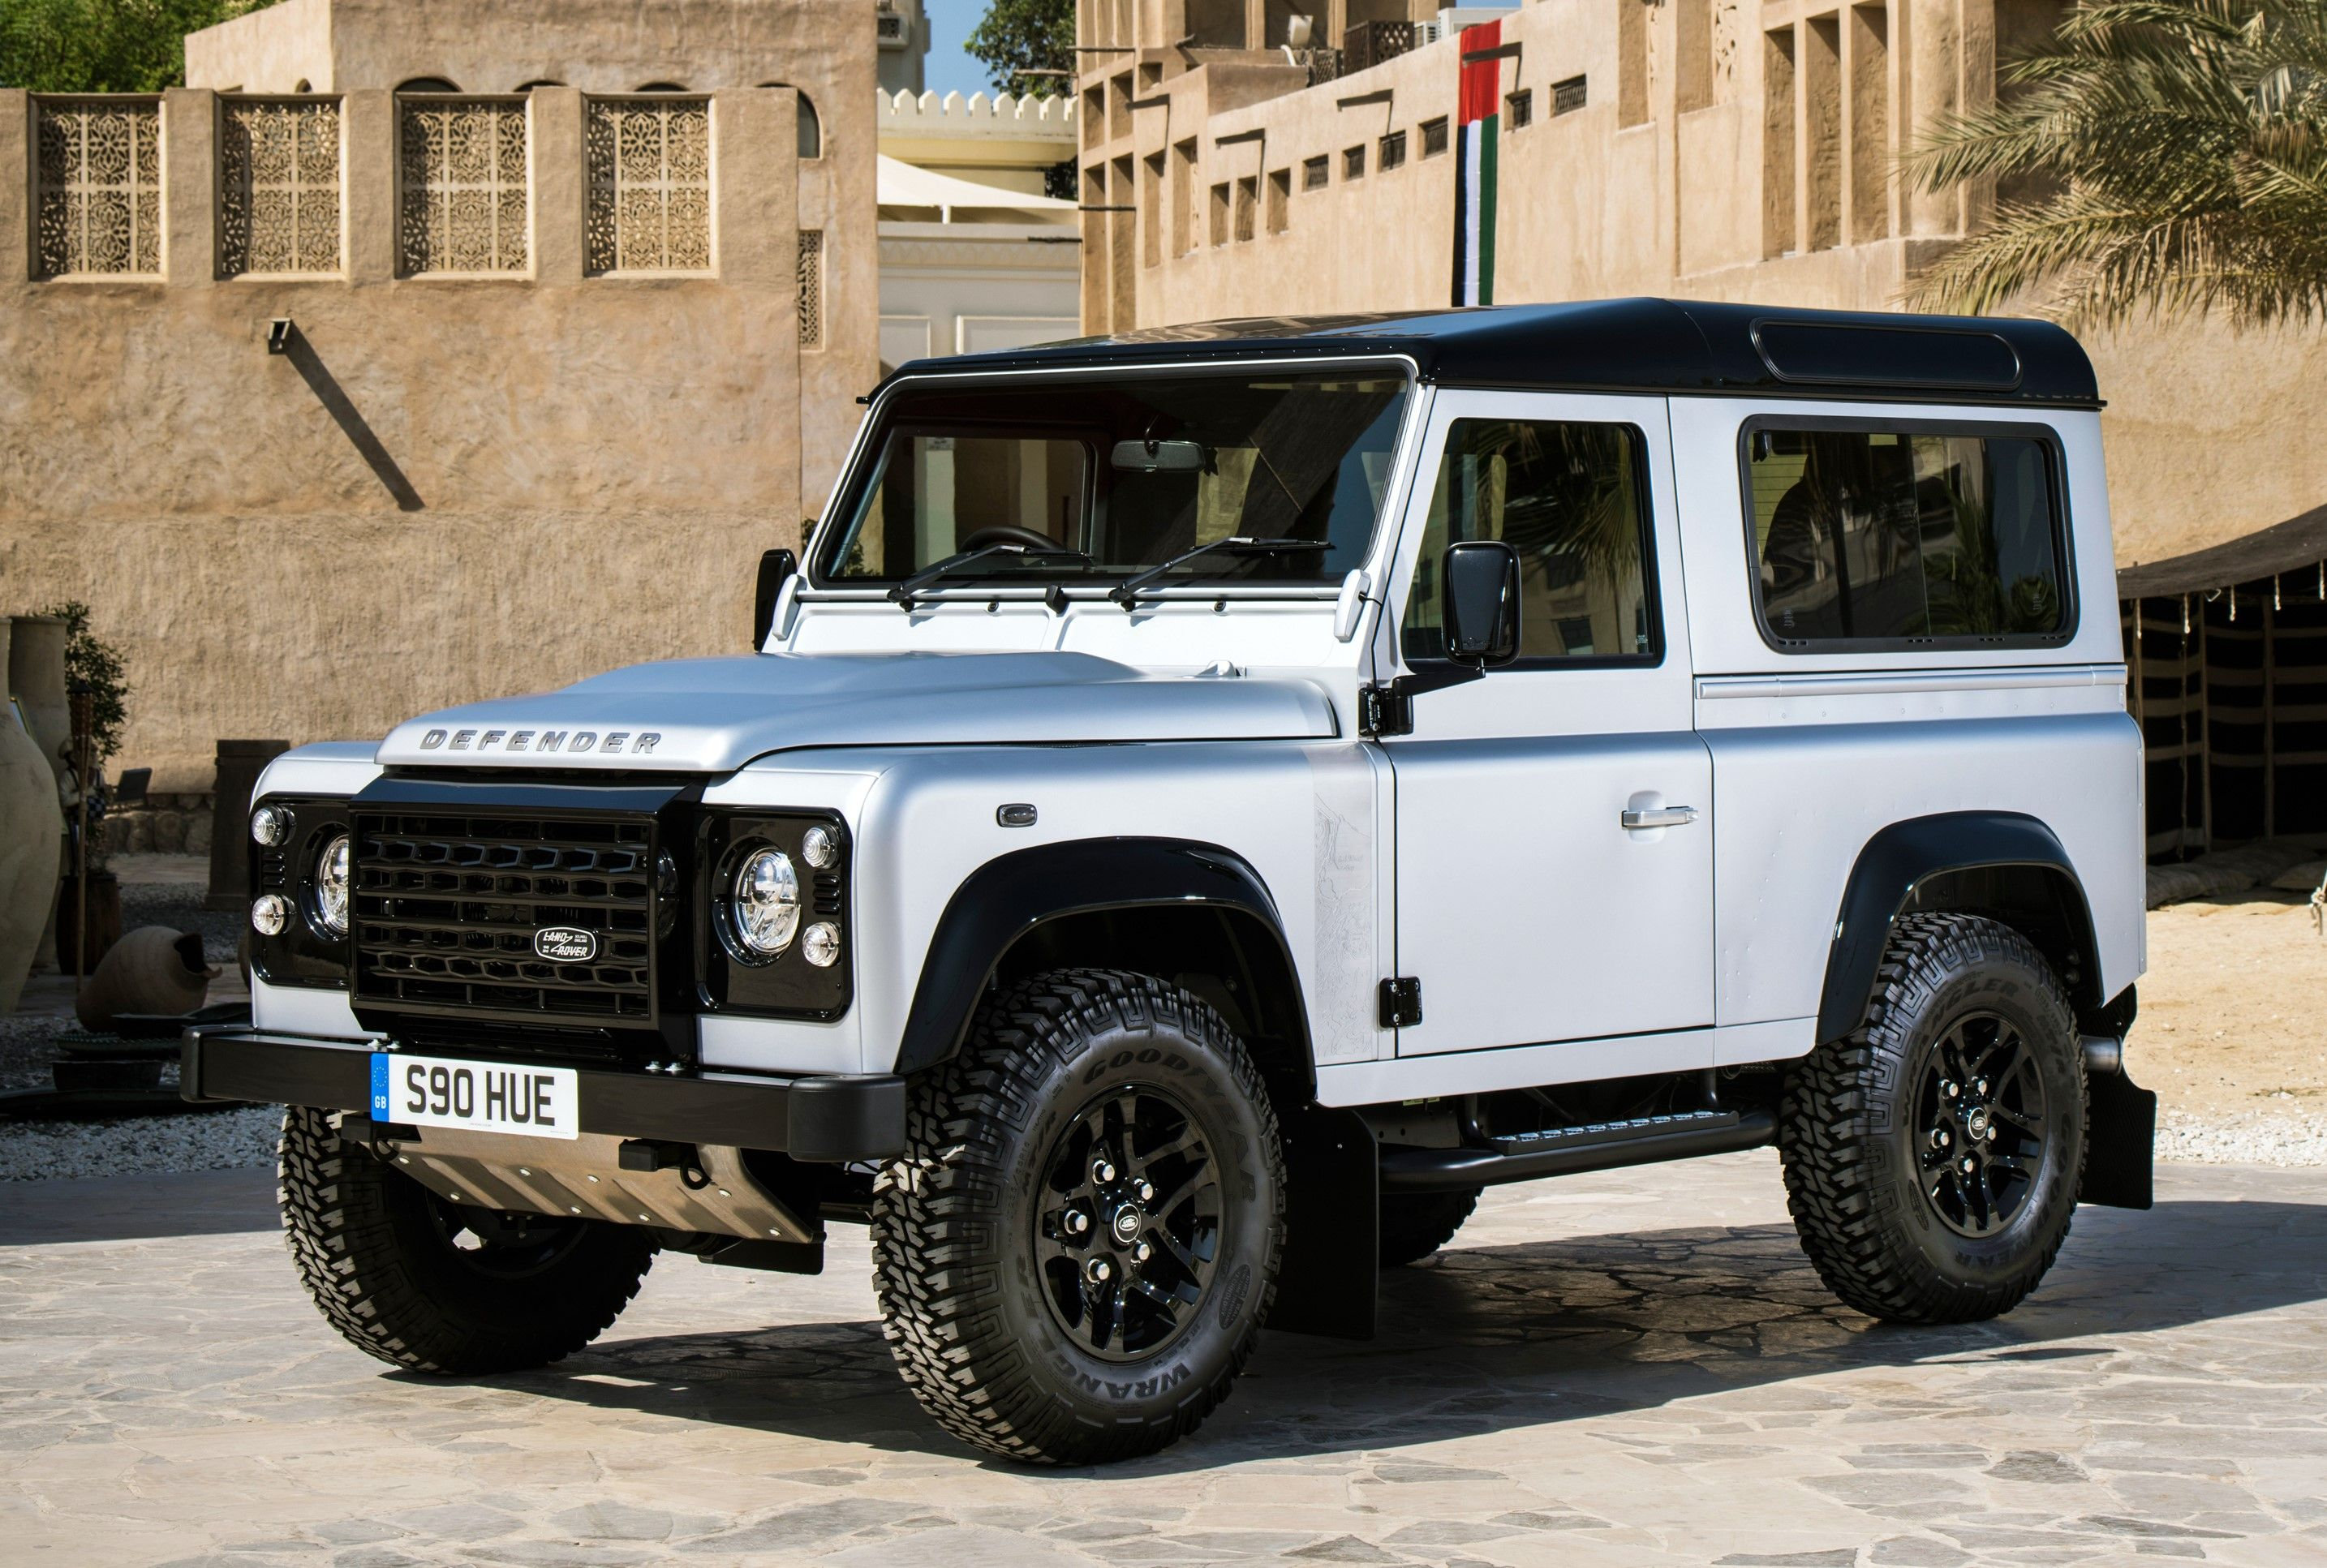 2015 Land Rover Defender 90 Land Rover Land Rover Defender